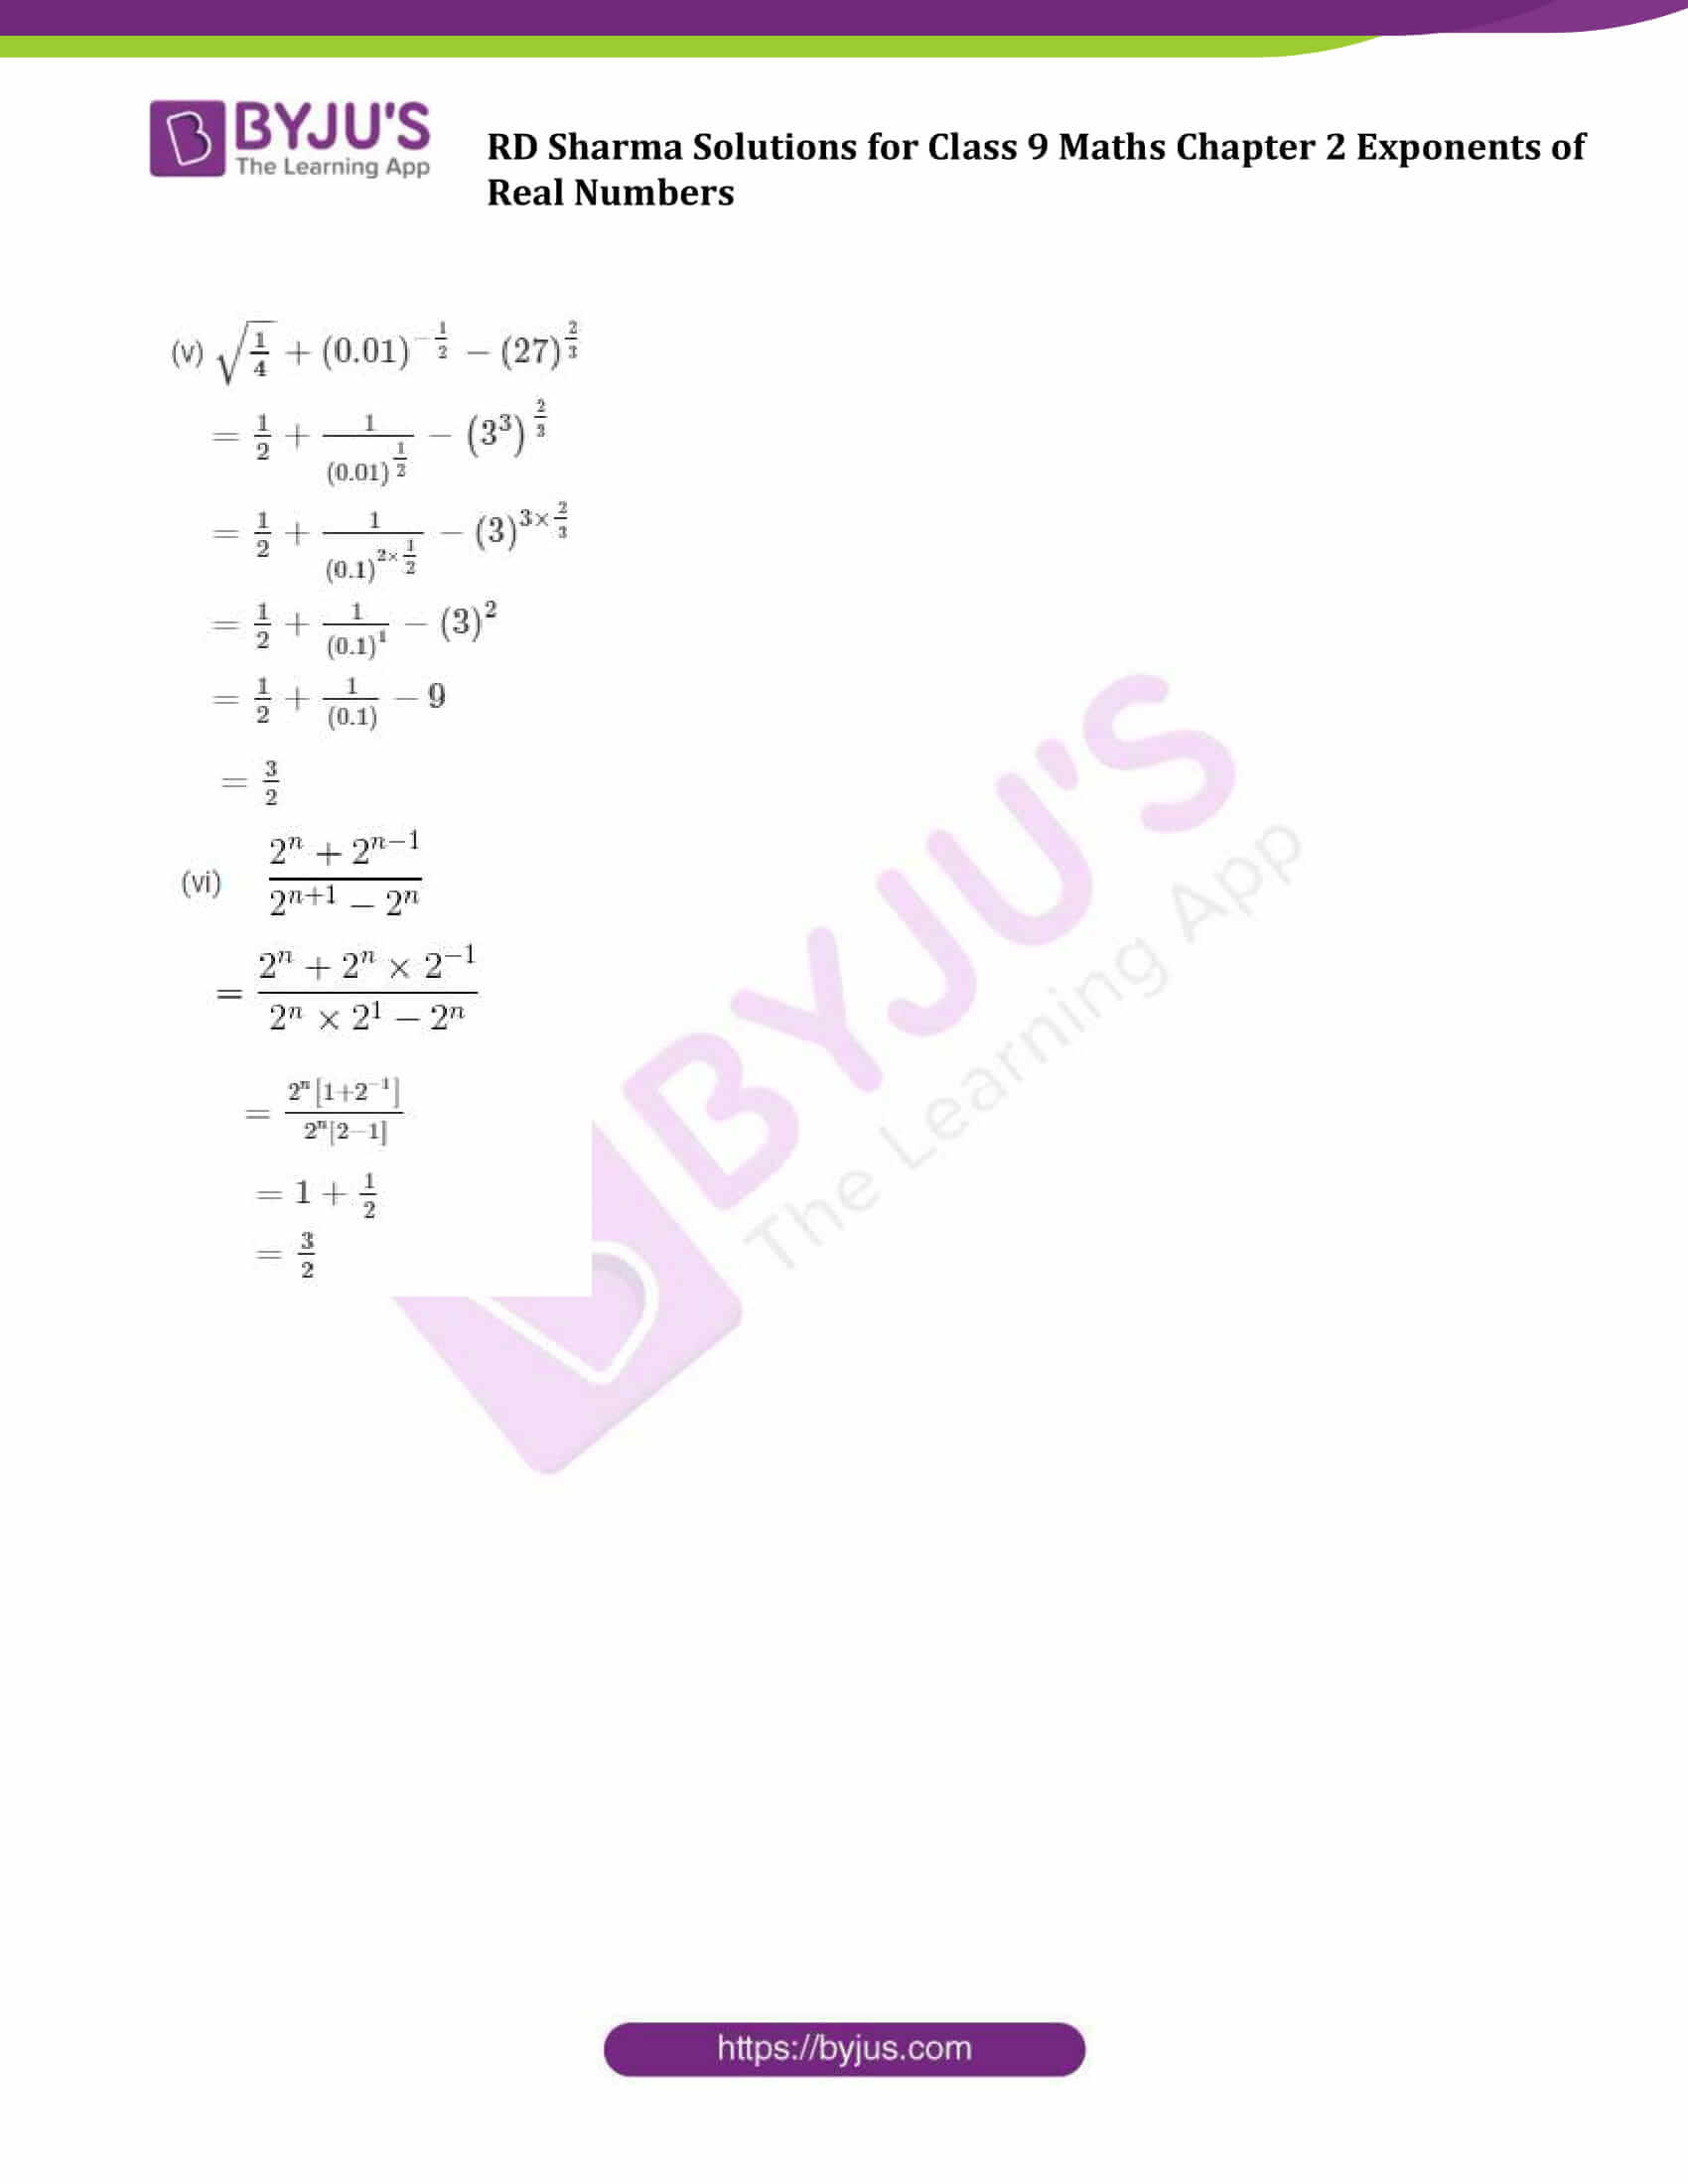 RD Sharma Solution class 9 Maths Chapter 2 Exponents of Real Numbers 18